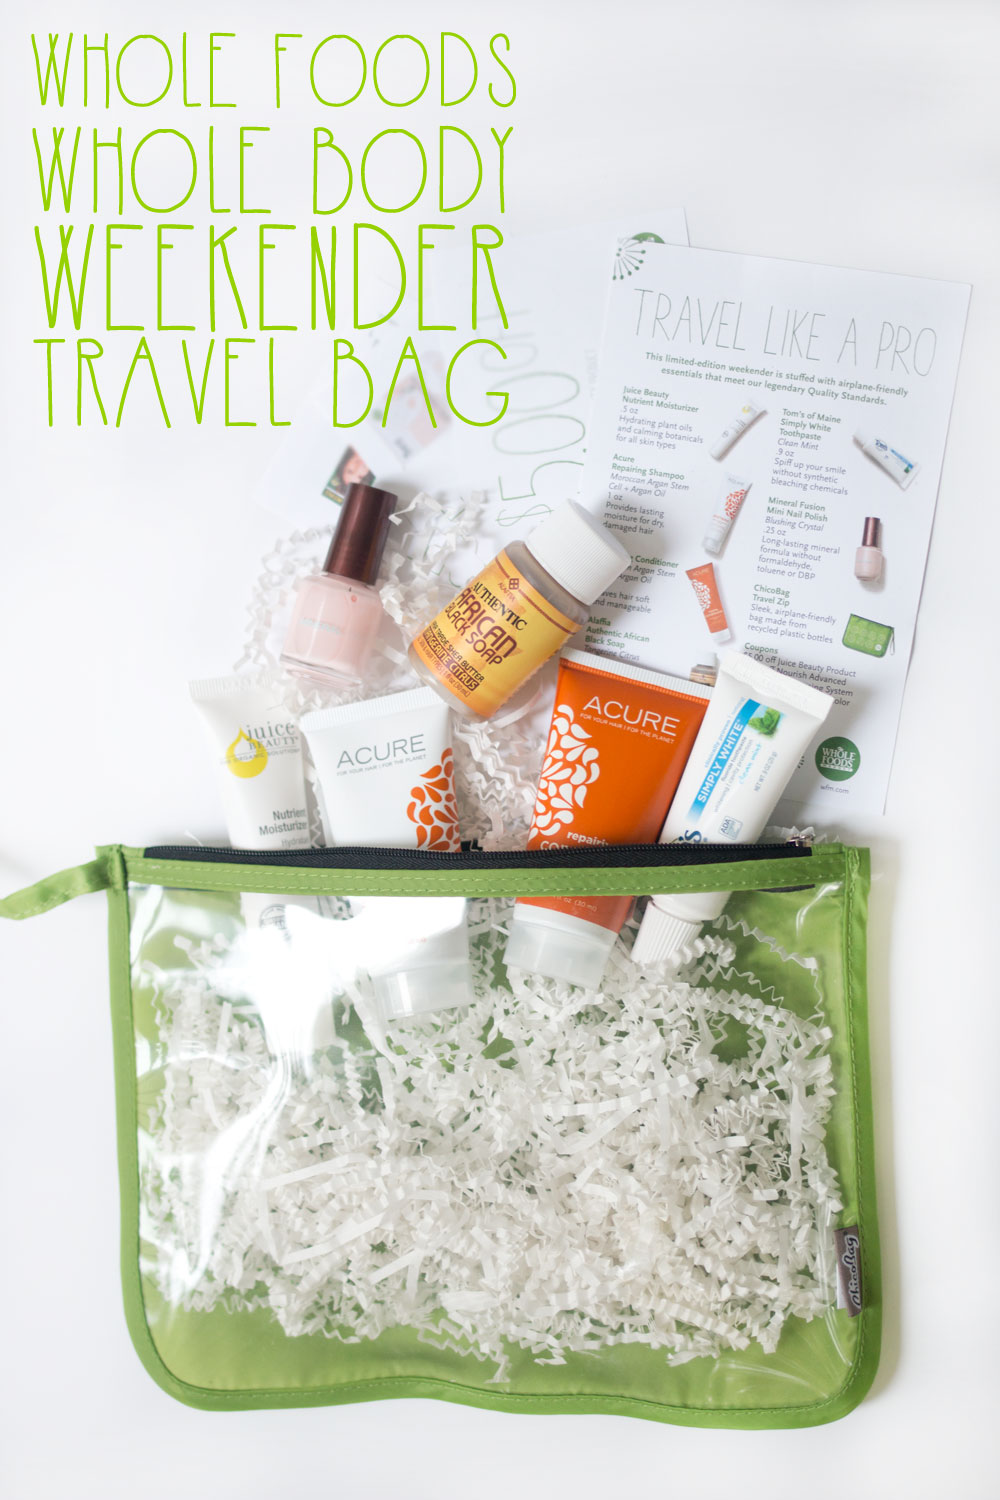 Whole Foods Whole Body Weekender Travel Bag Review // hellorigby seattle beauty blog